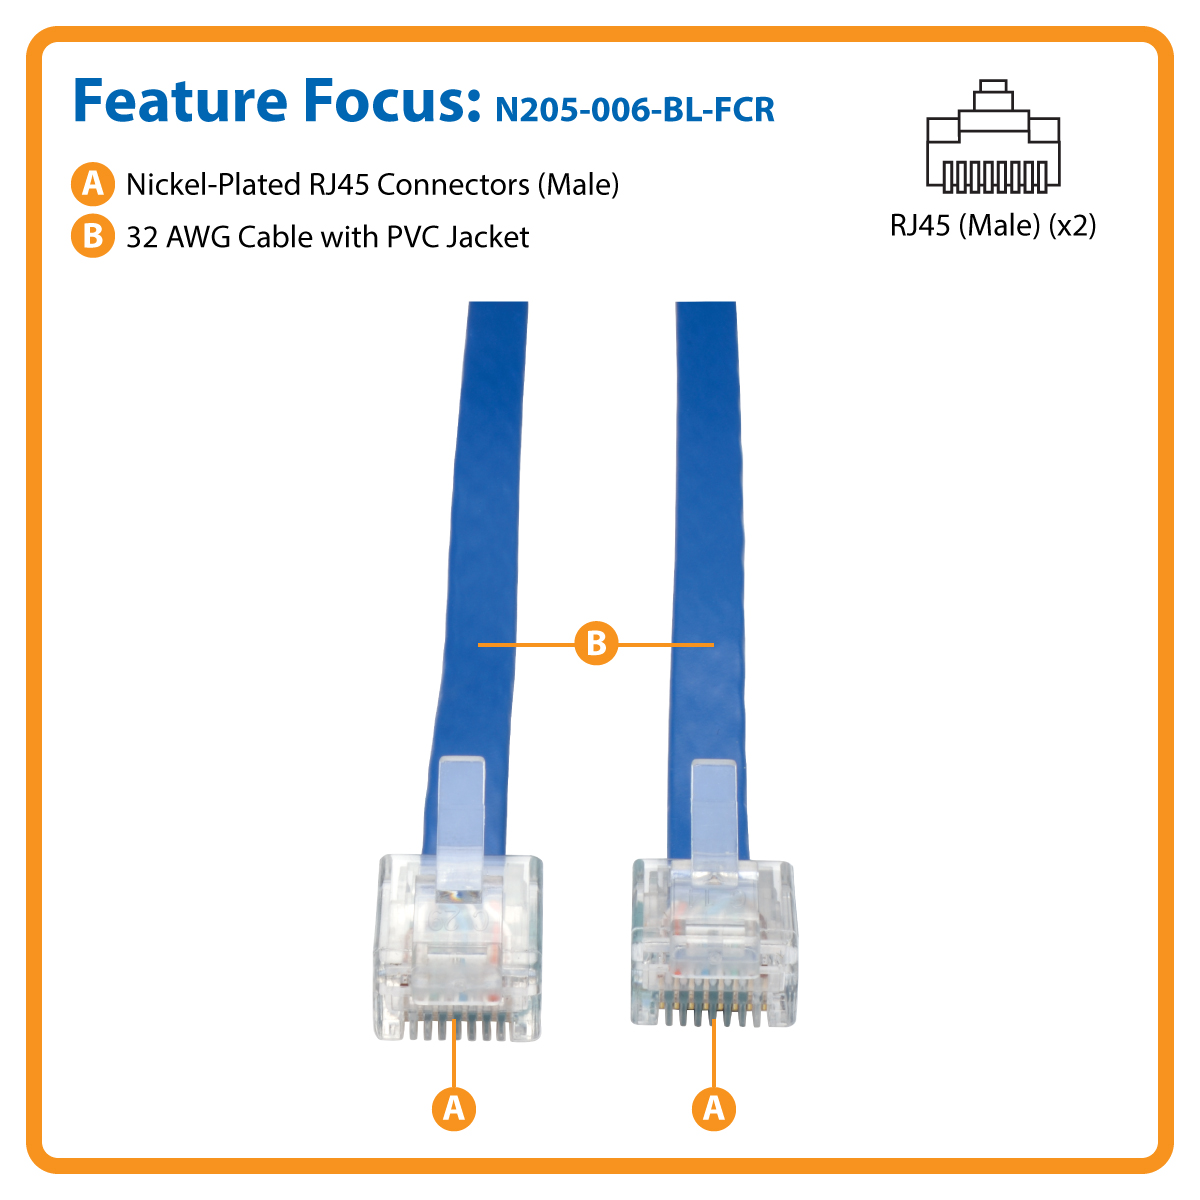 Tripp Lite Cisco Console Replacement Rollover Cable Rj45 32awg M 6 Usb Wiring Diagram How To Build An Apc Ups Data Page Ft